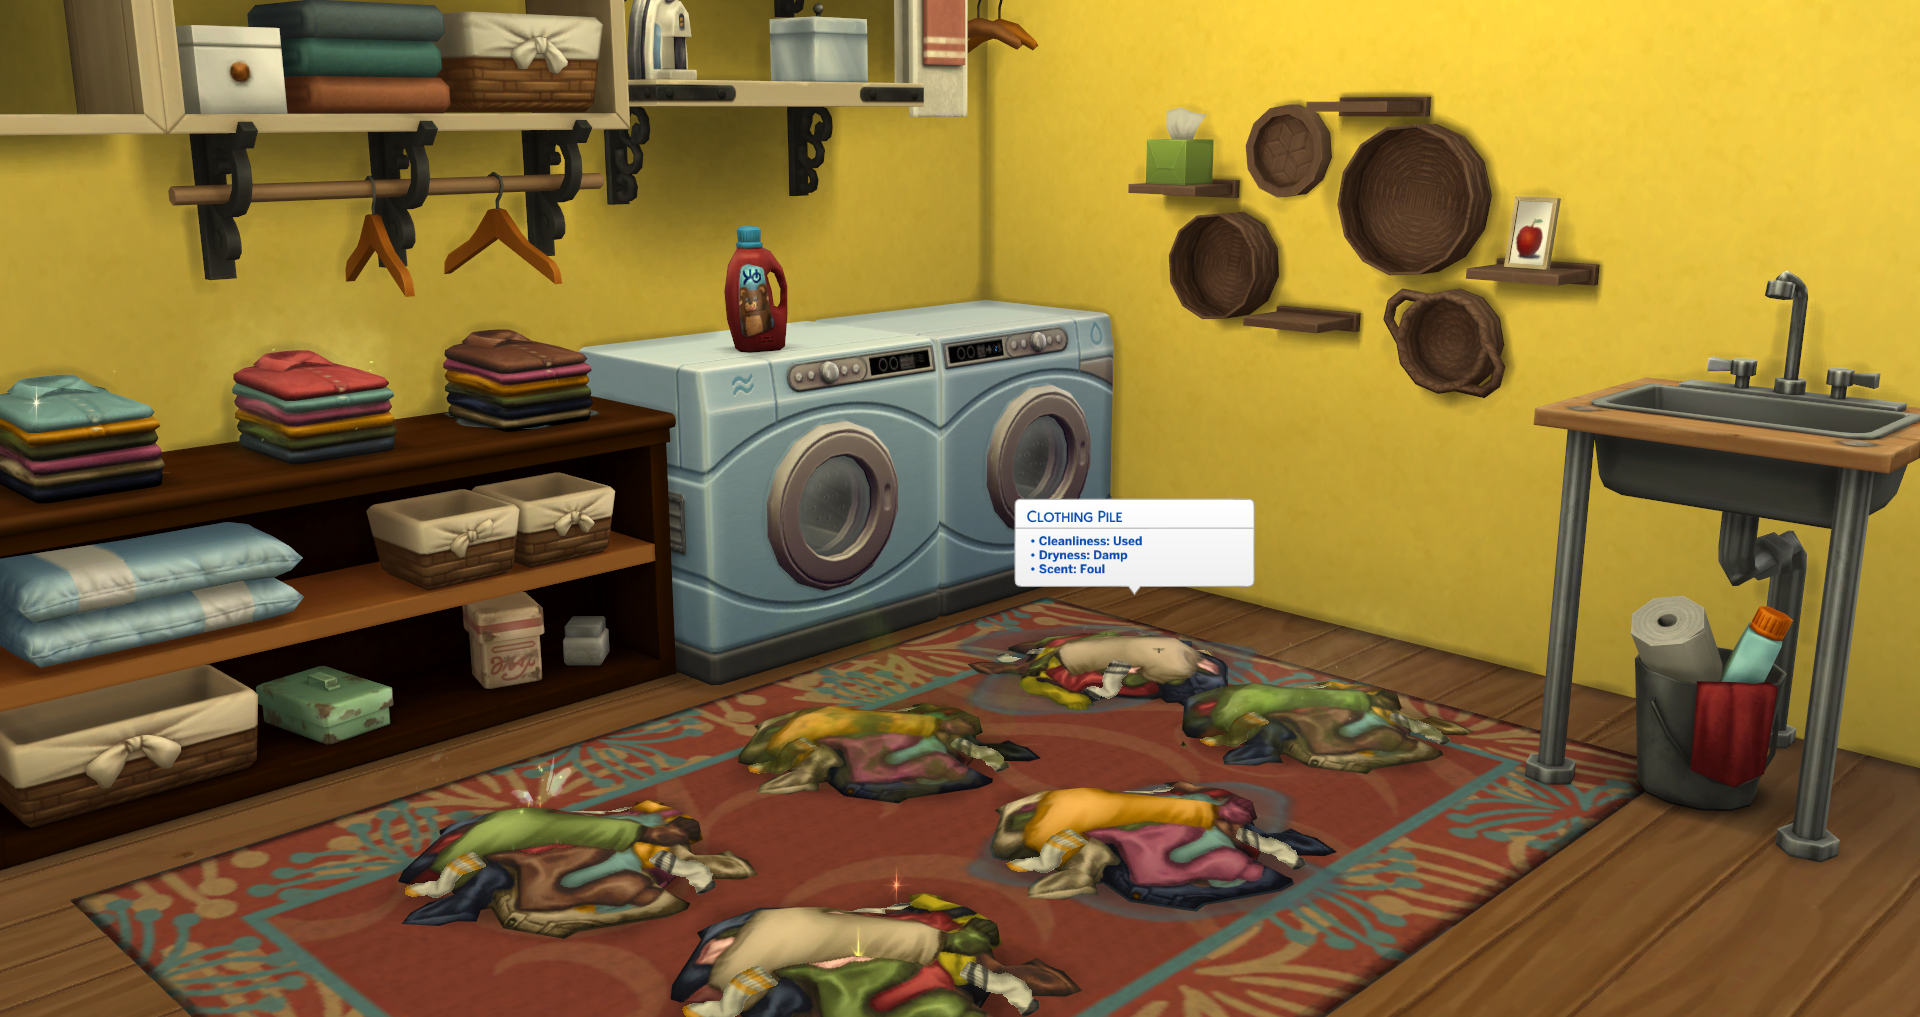 The Sims 4 Laundry Day Stuff Guide - SimsVIP